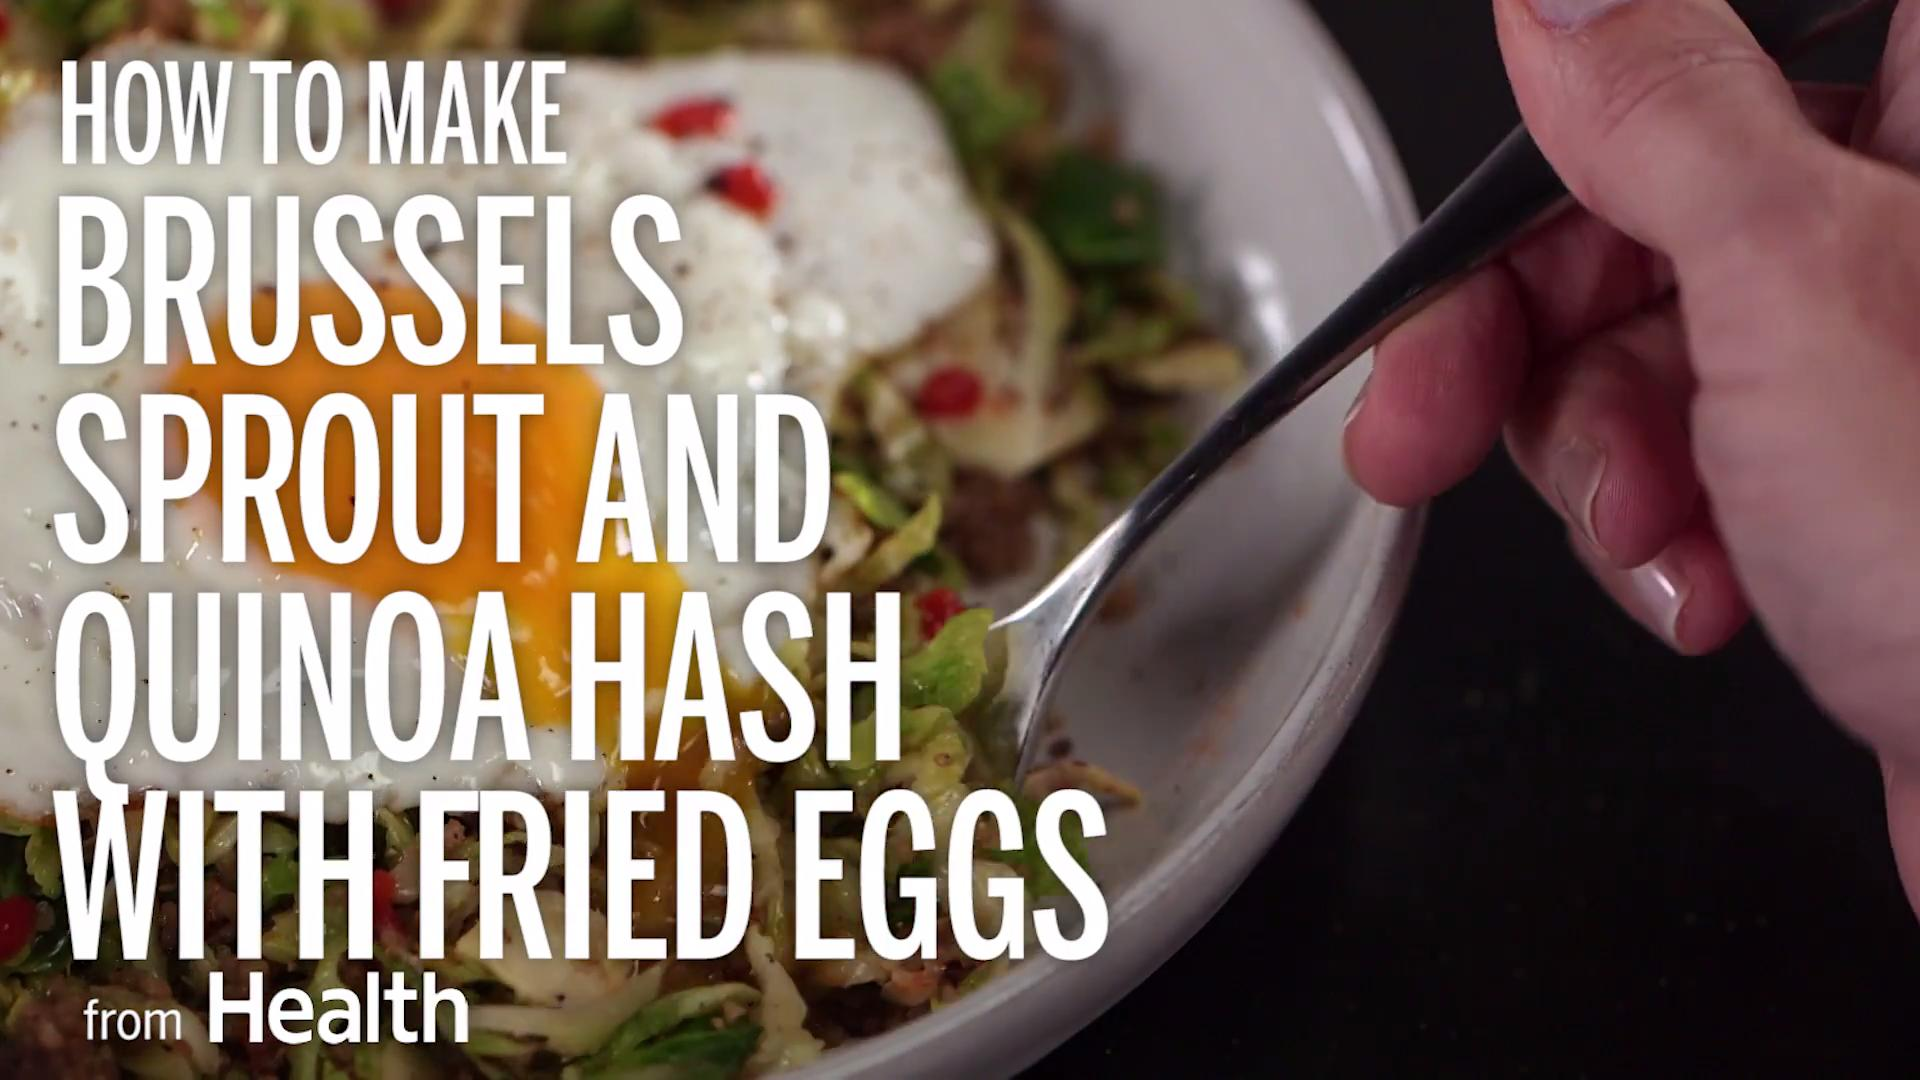 Brussels Sprout and Quinoa Hash With Fried Eggs